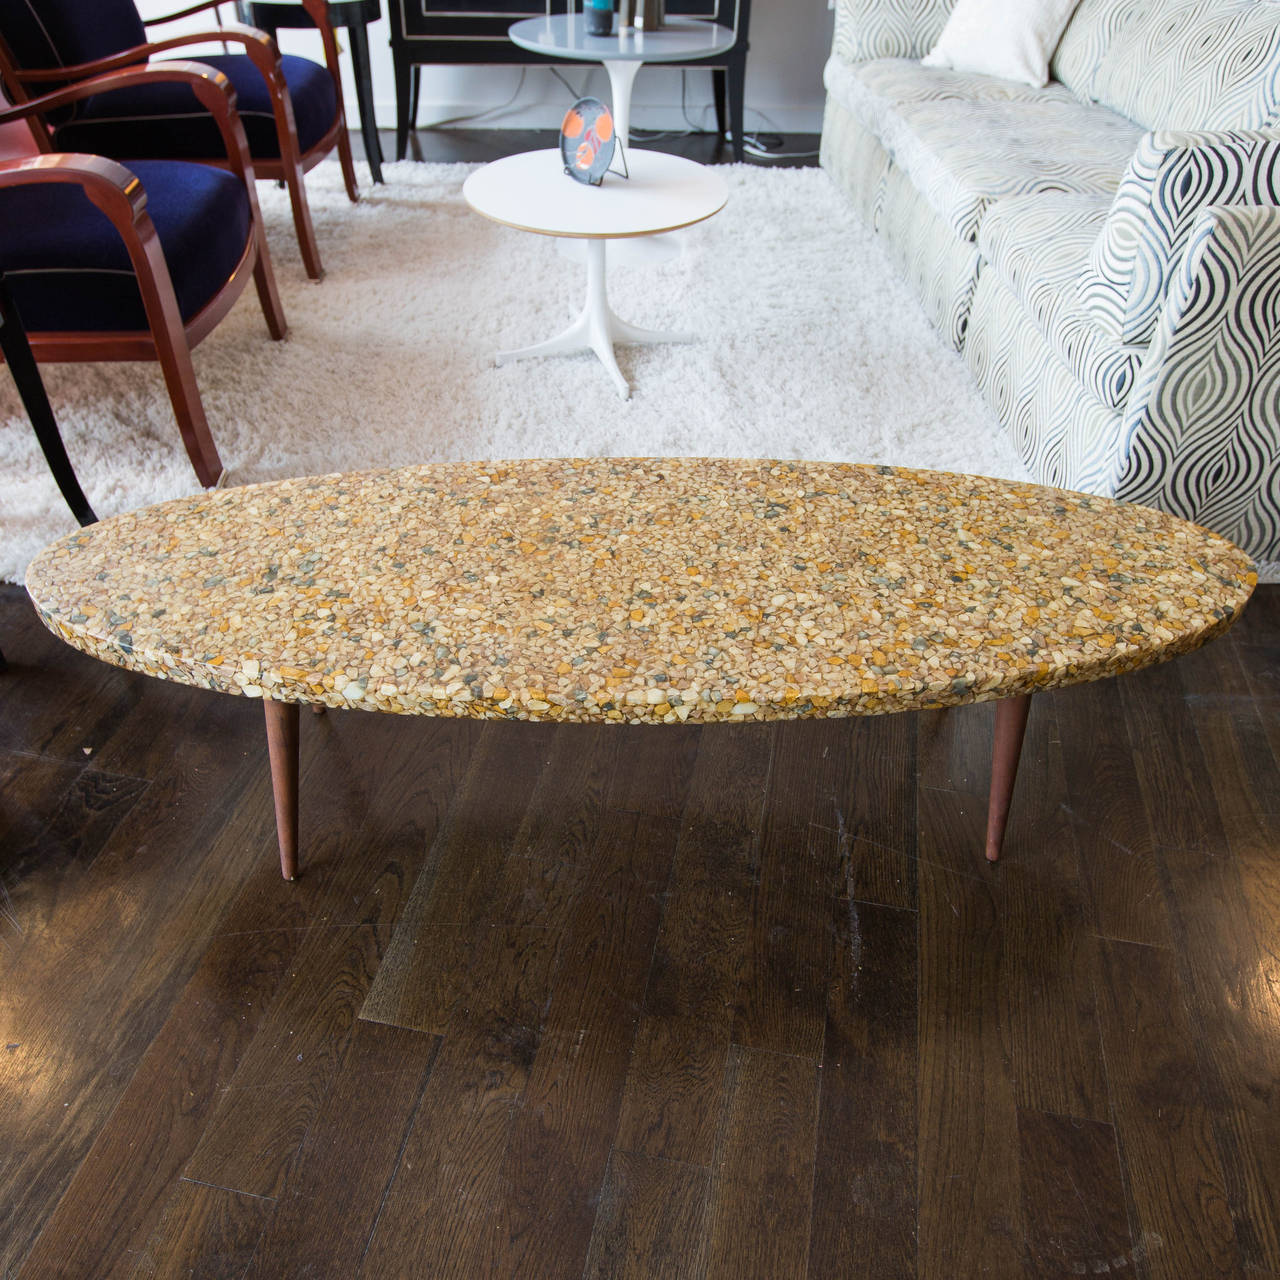 vintage surfboard coffee table made of river rock in resin at 1stdibs